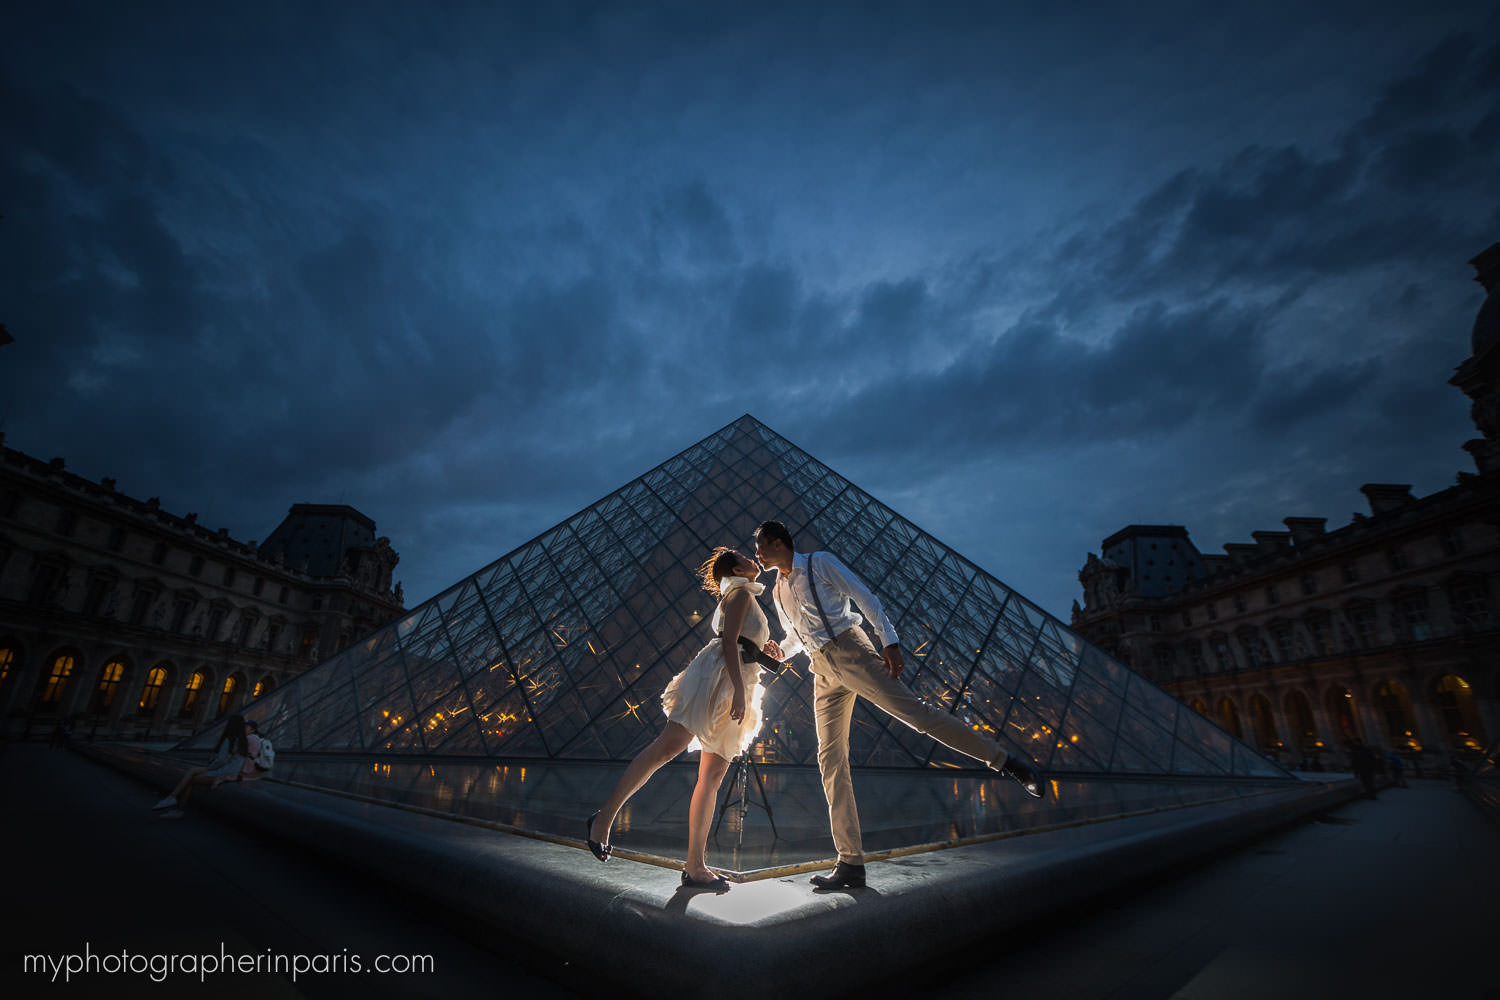 kiss at le louvre by night